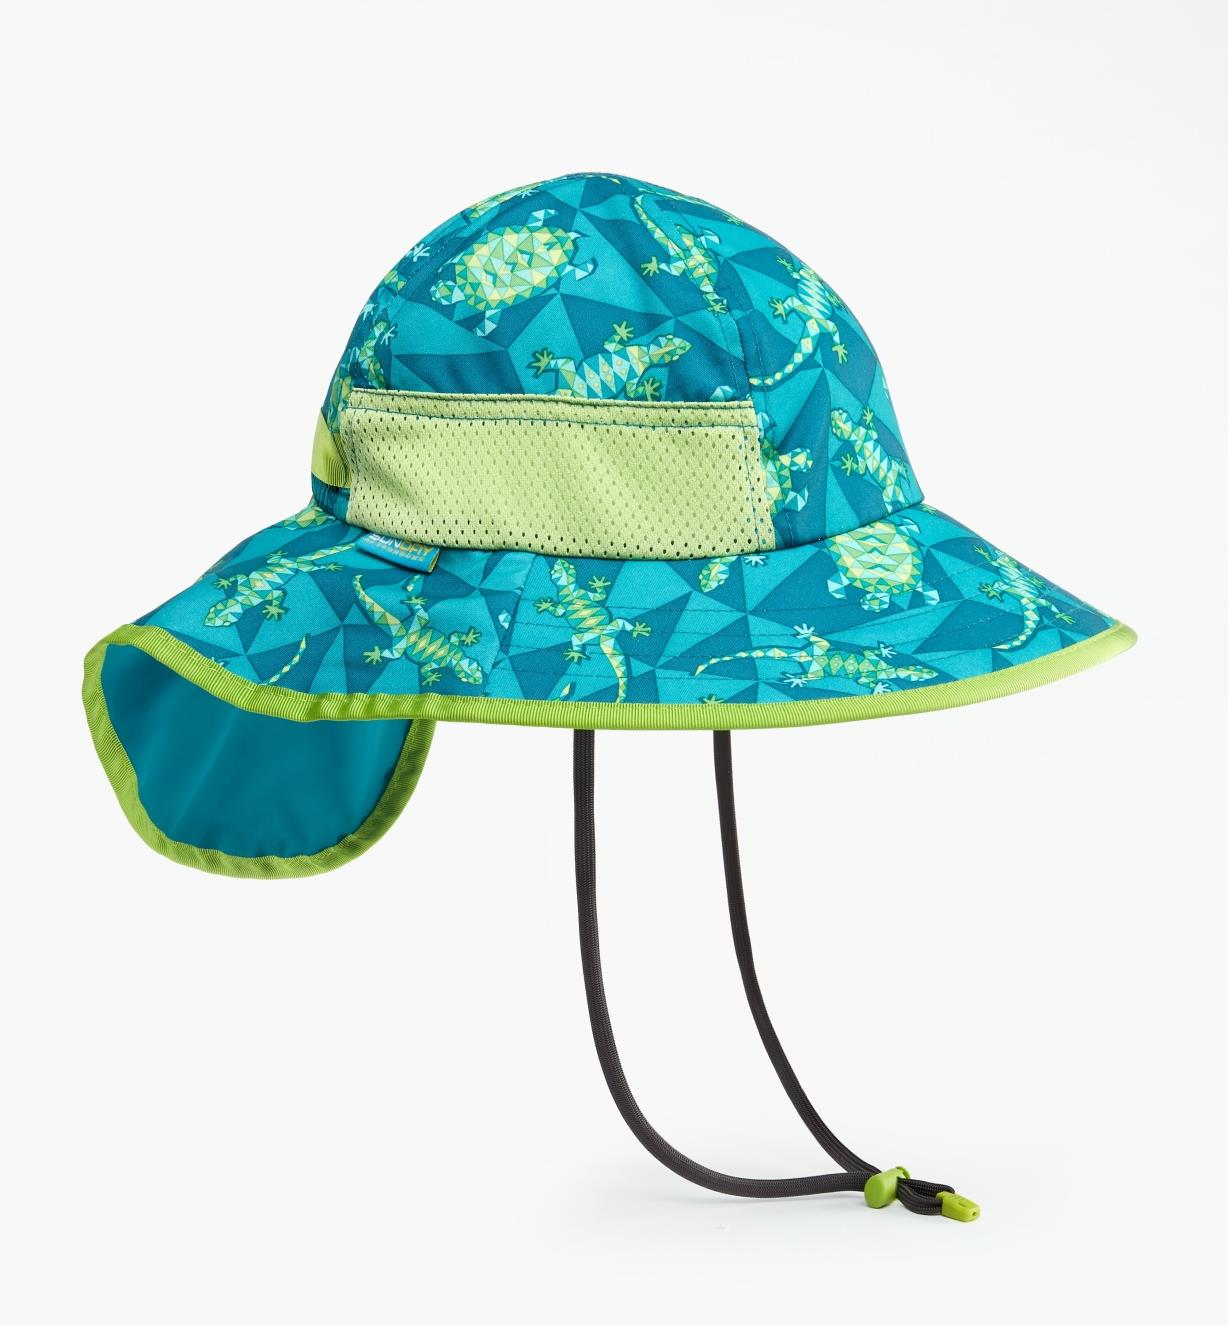 HL562 - Kids' Play Hat, Reptile Pattern